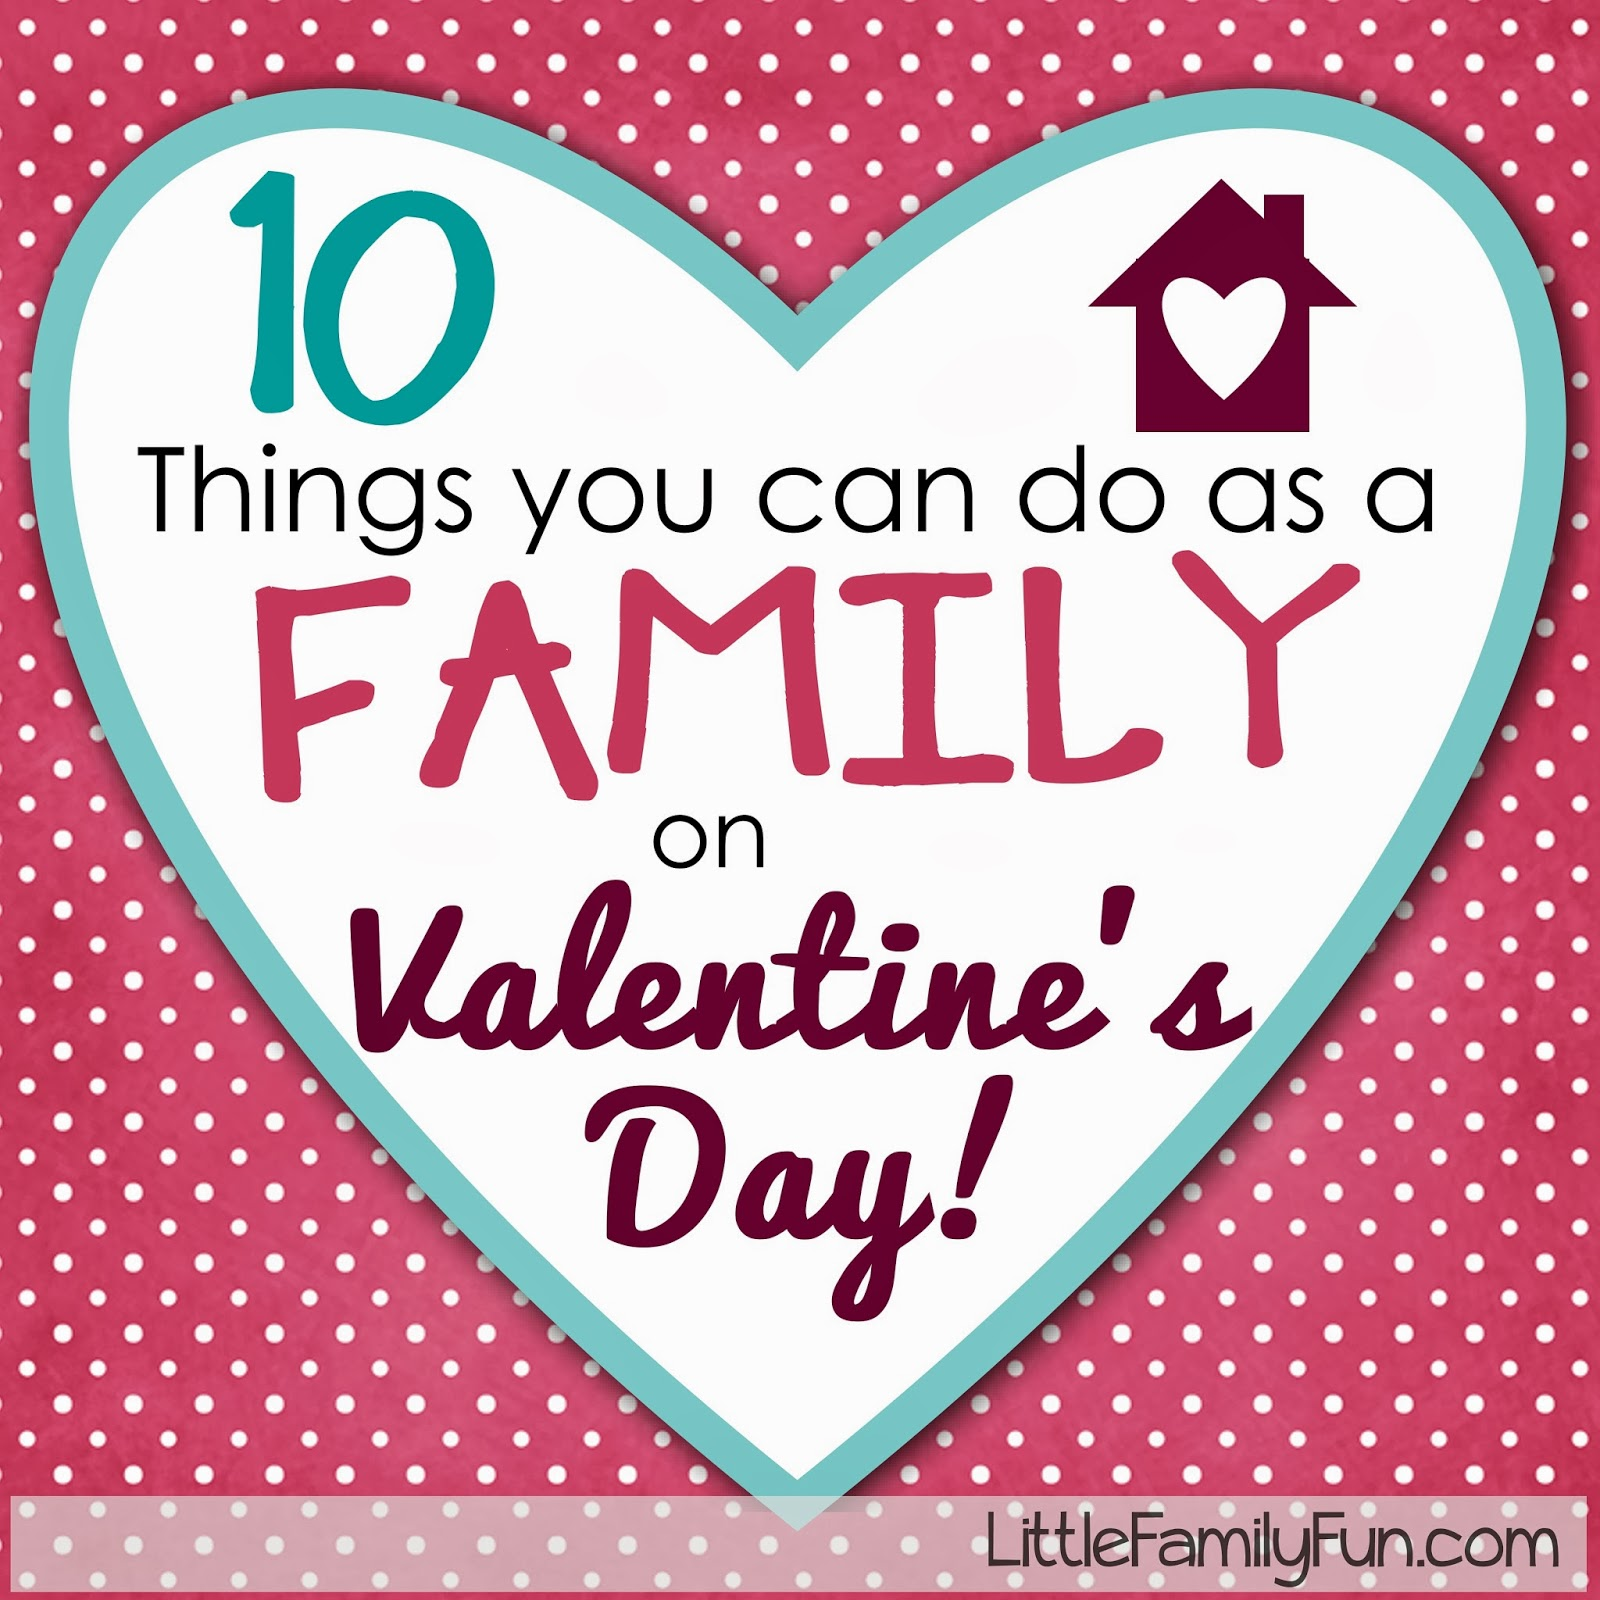 Little Family Fun Family Activities For Valentine S Day